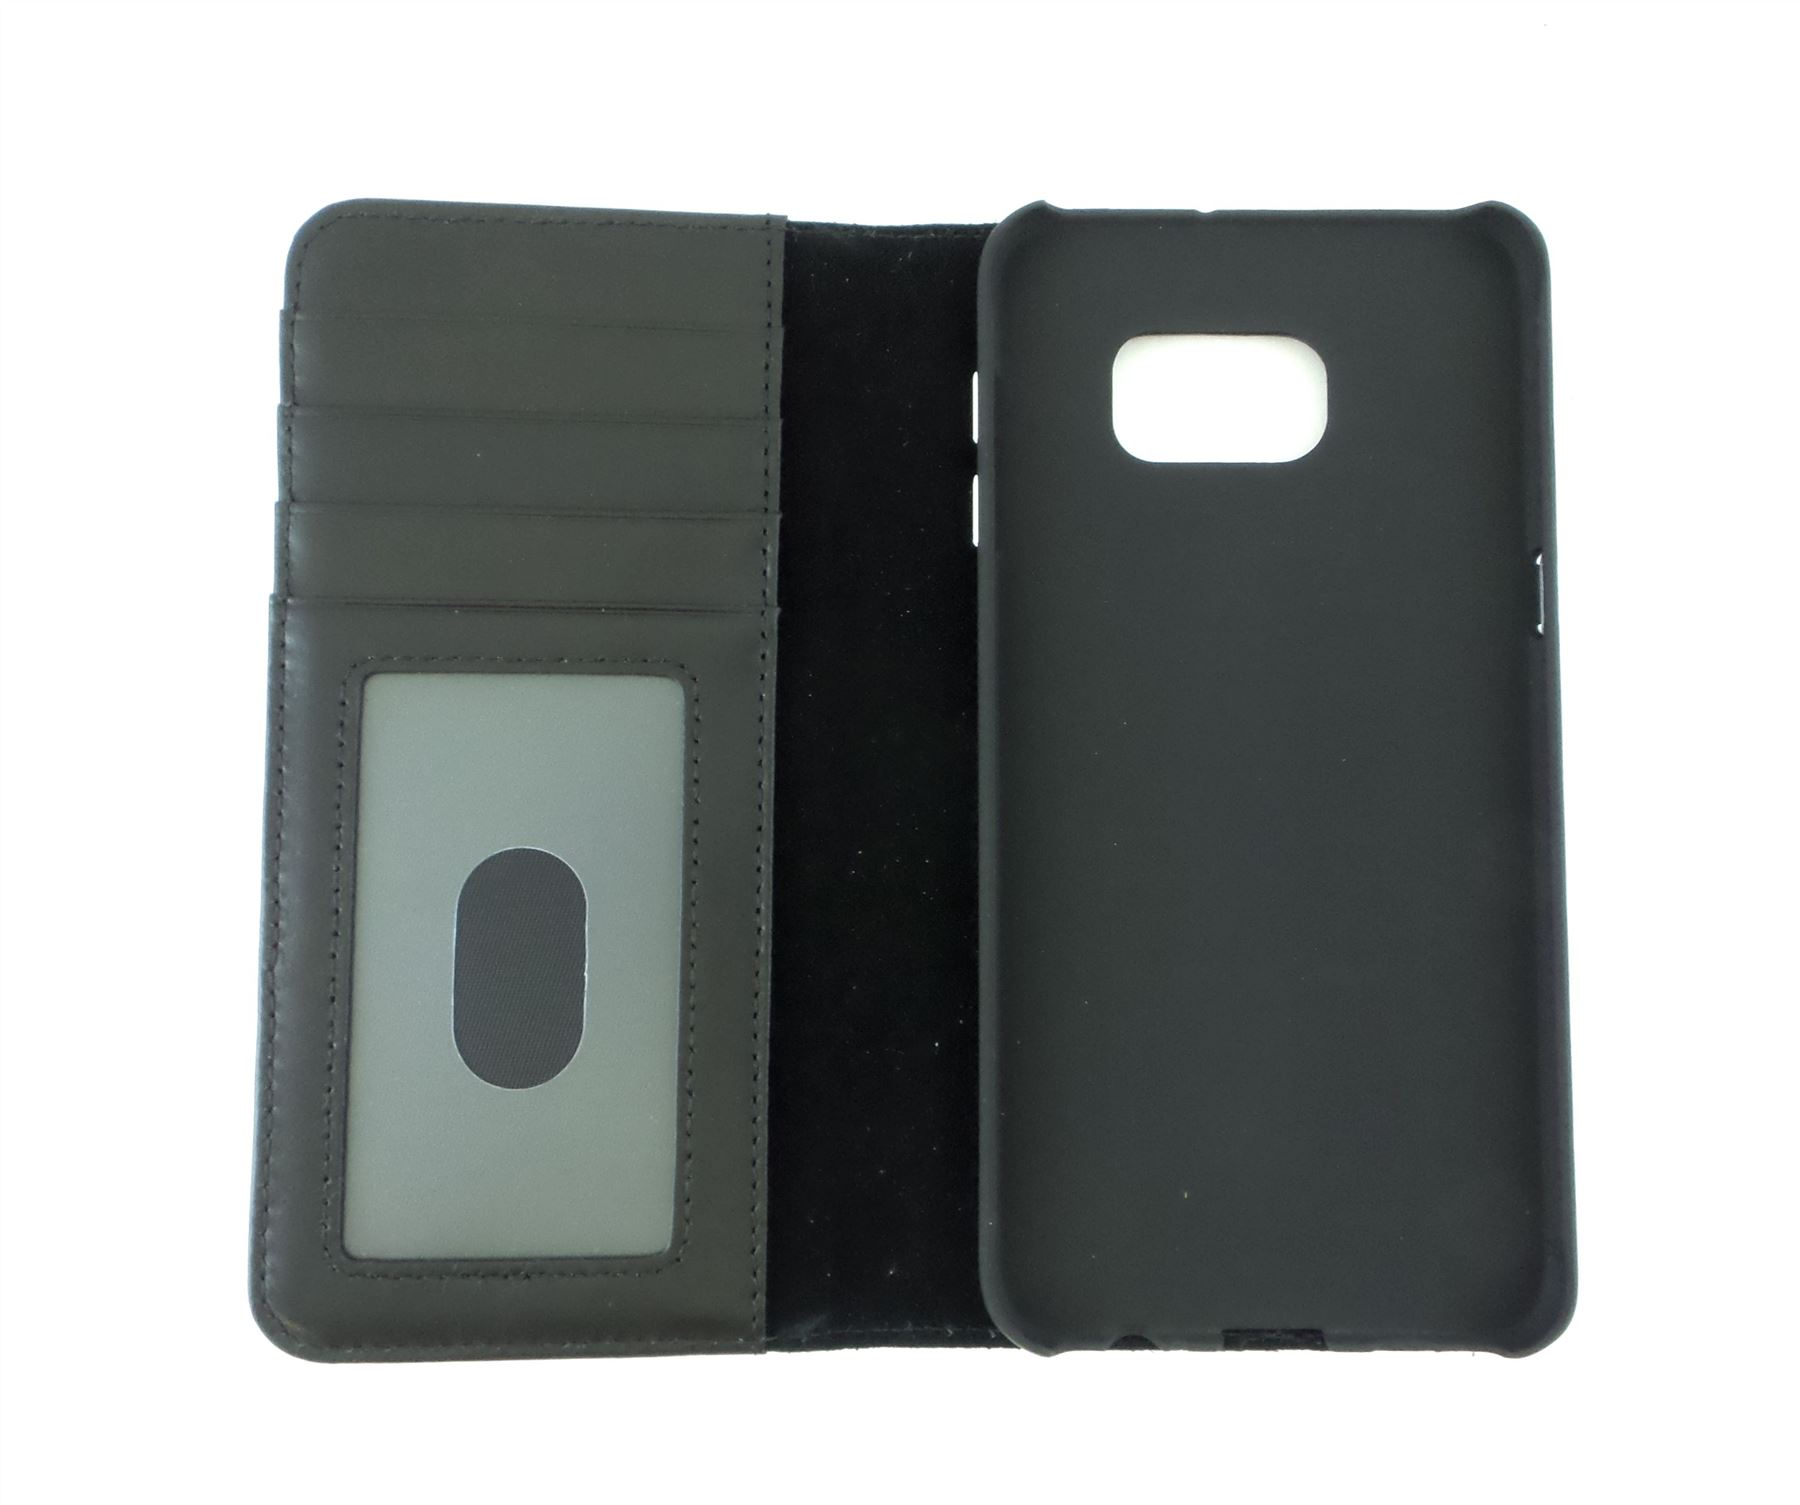 timeless design b7f39 b8536 Details about Case-Mate Leather Wallet Folio for Samsung Galaxy S6 Edge  Plus Black CM032923